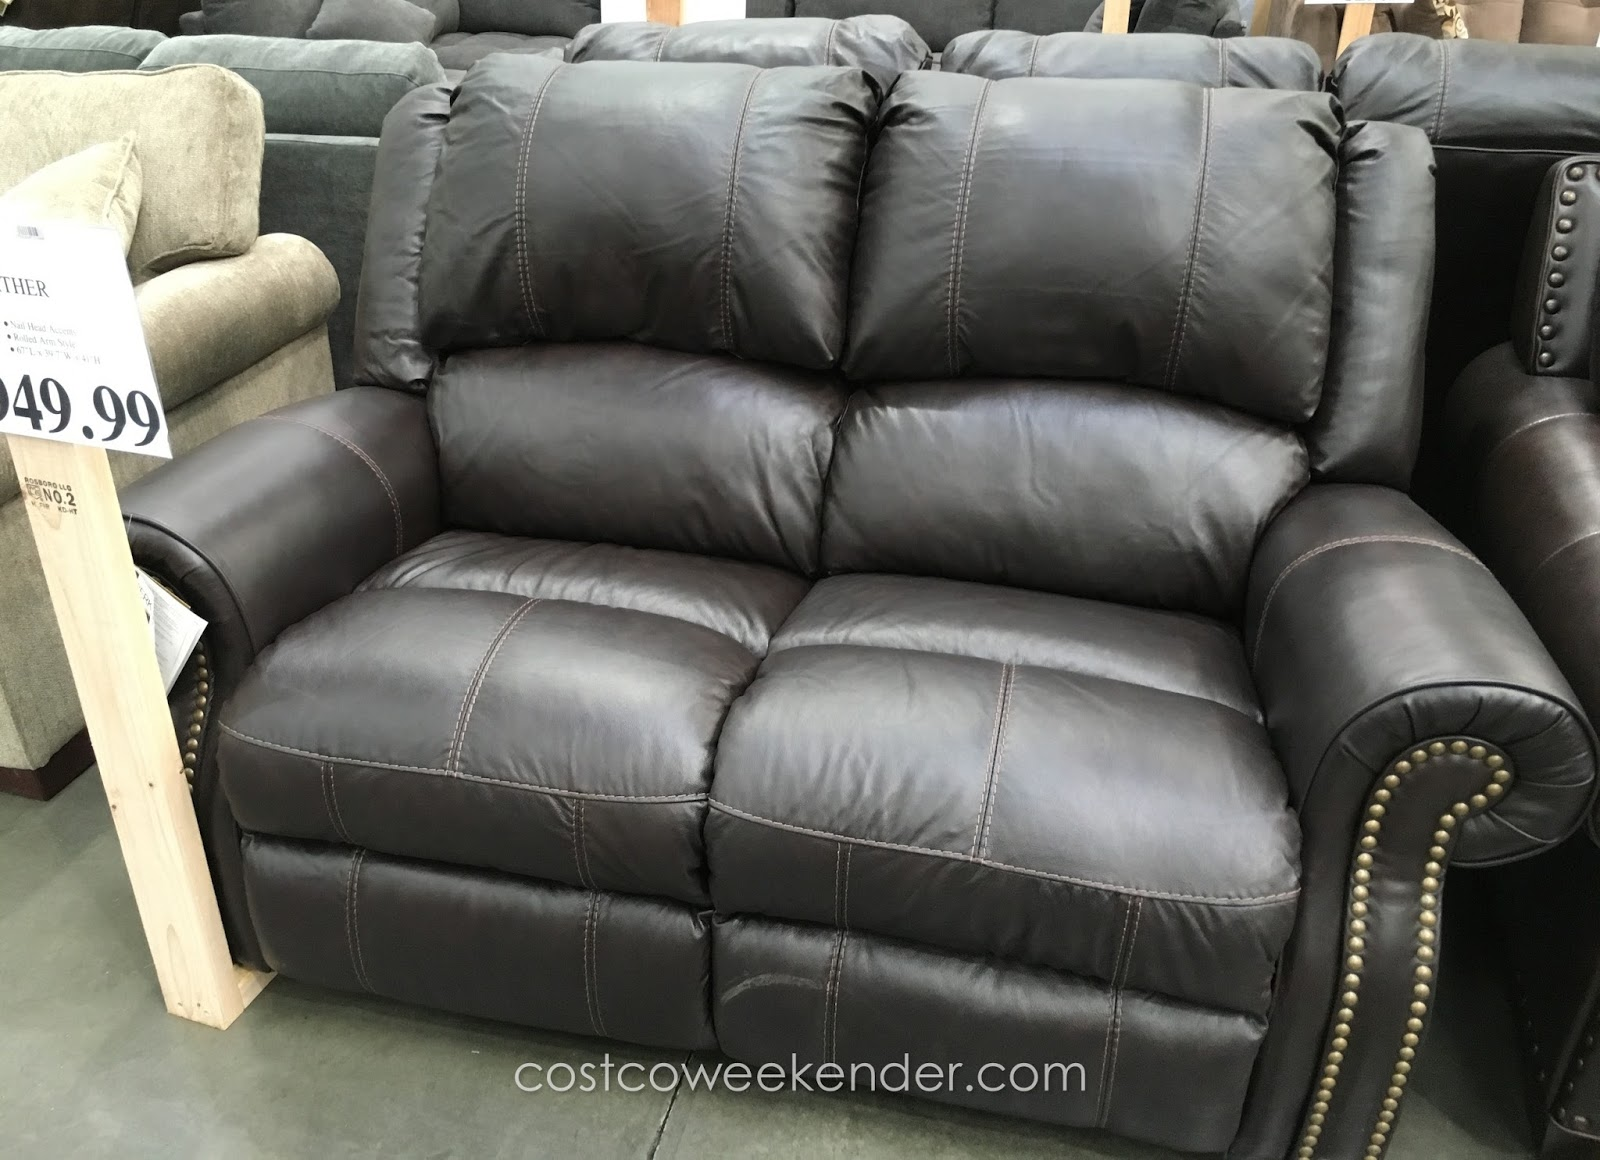 Berkline Reclining Leather Loveseat | Costco Weekender